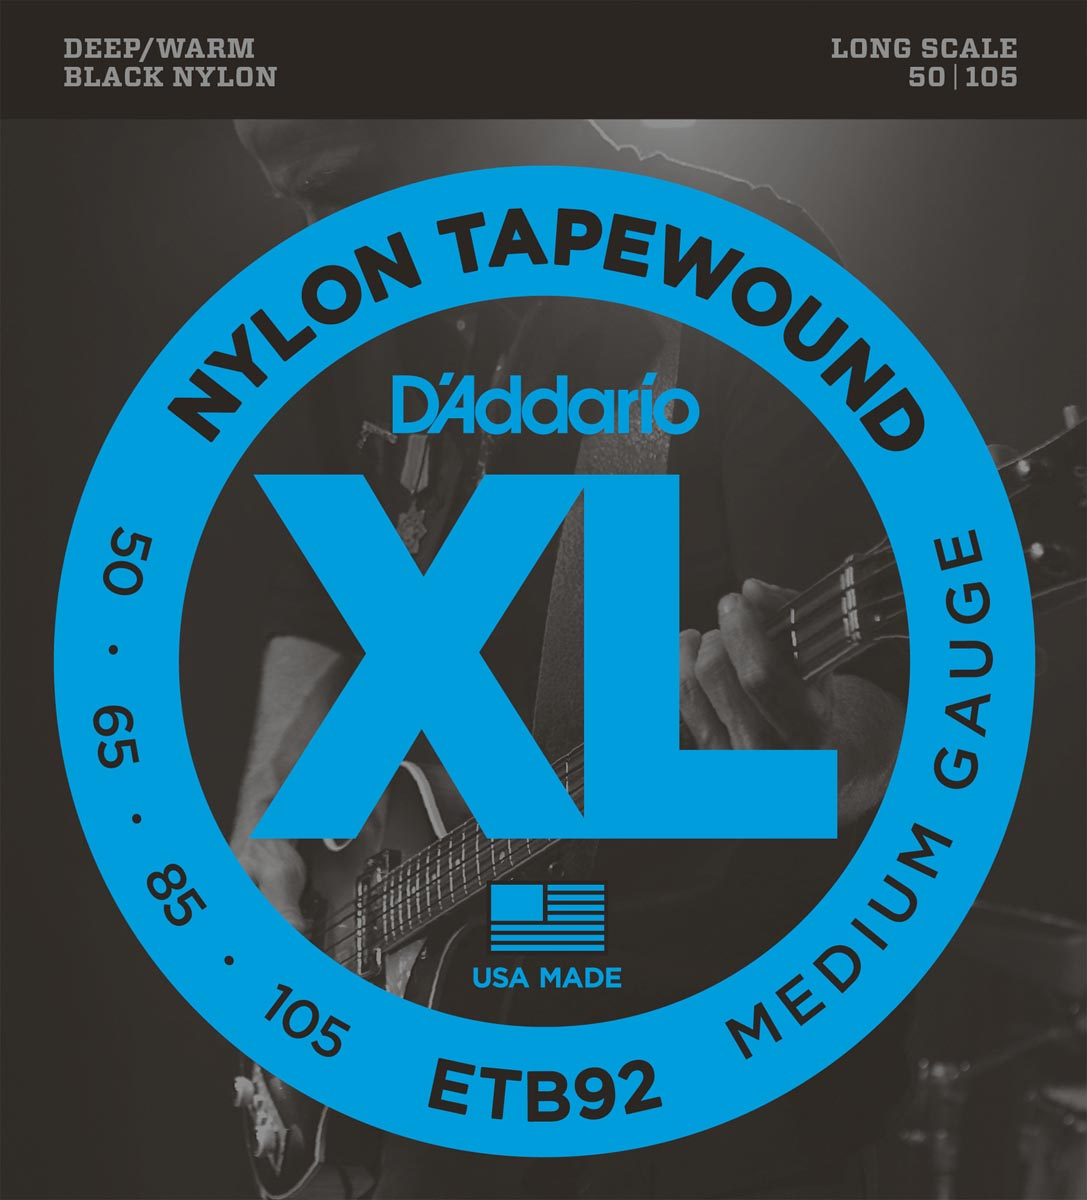 DADDARIO ETB92 TAPEWOUND MEDIUM LONG SCALE [50-105]